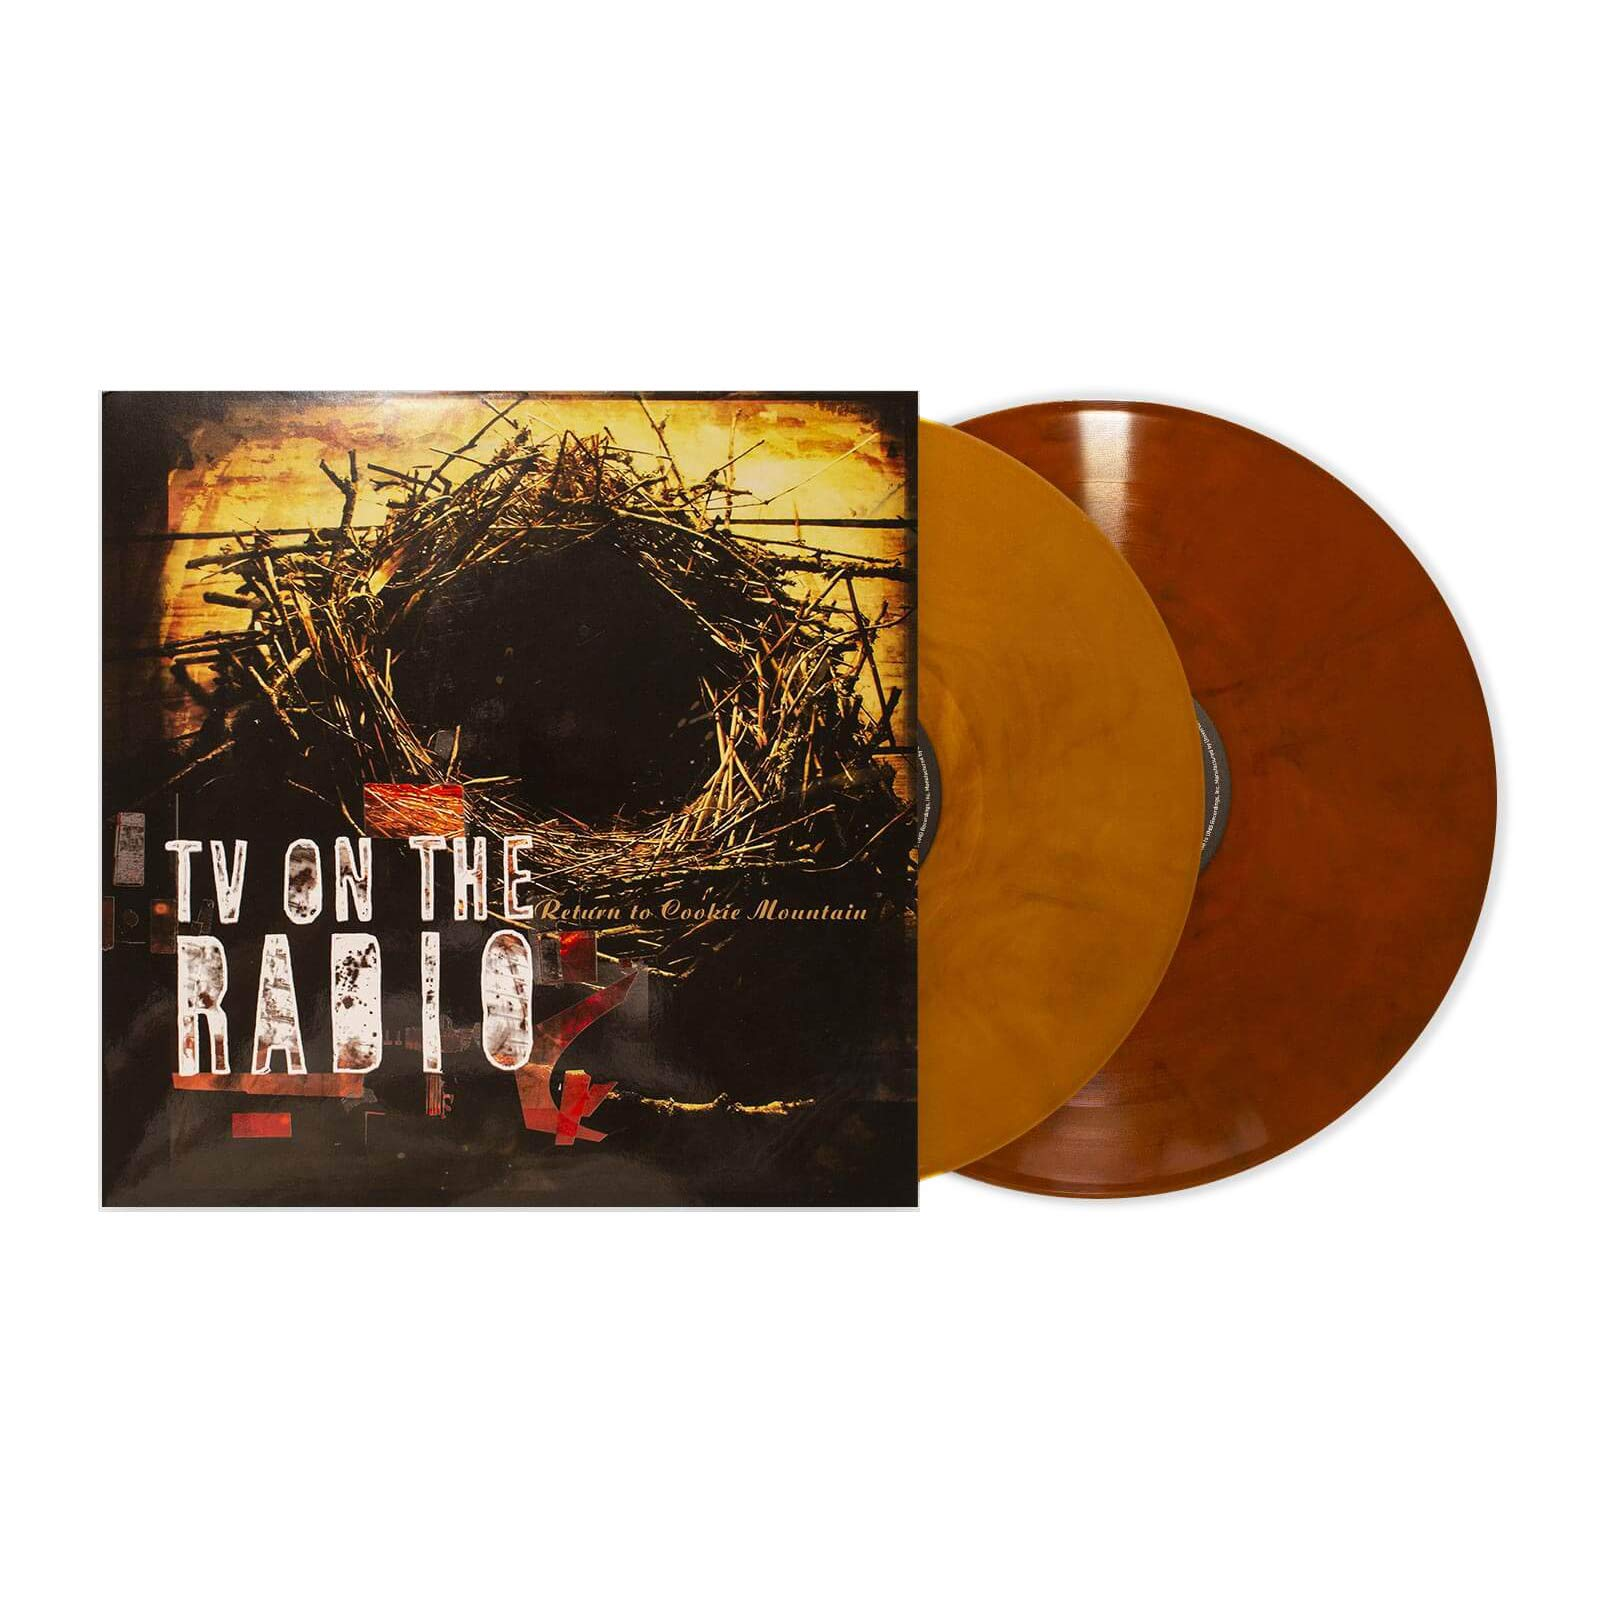 TV on the Radio - Return To Cookie Mountain Exclusive Edition Amber And Grain Color Vinyl 2XLP [Condition- VG+/NM] by Interscope Records